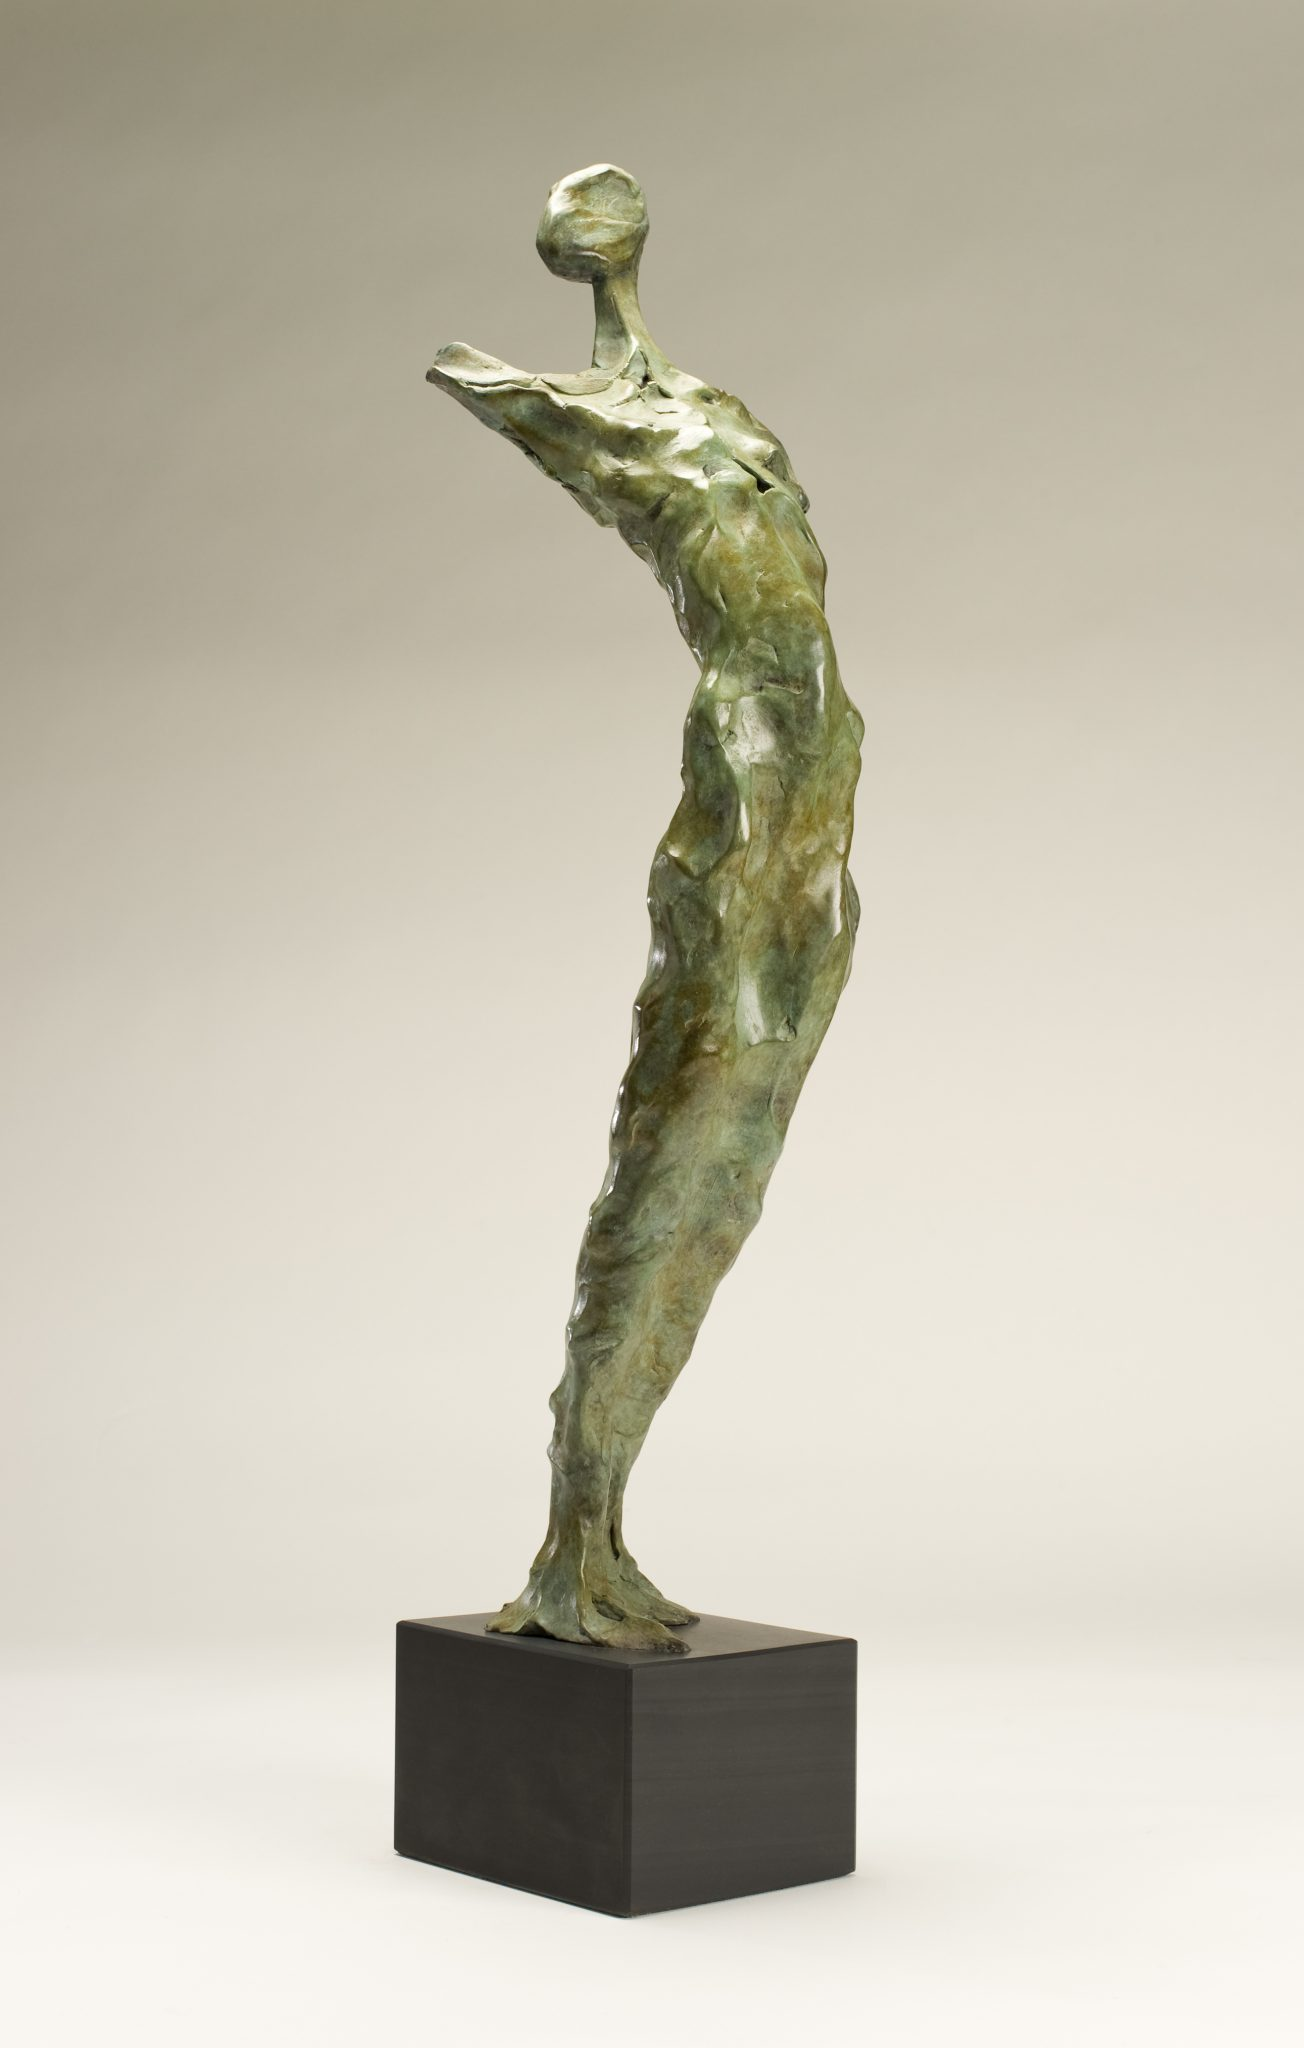 Arche Ossulaire-bronze sculpture of abstracted figure